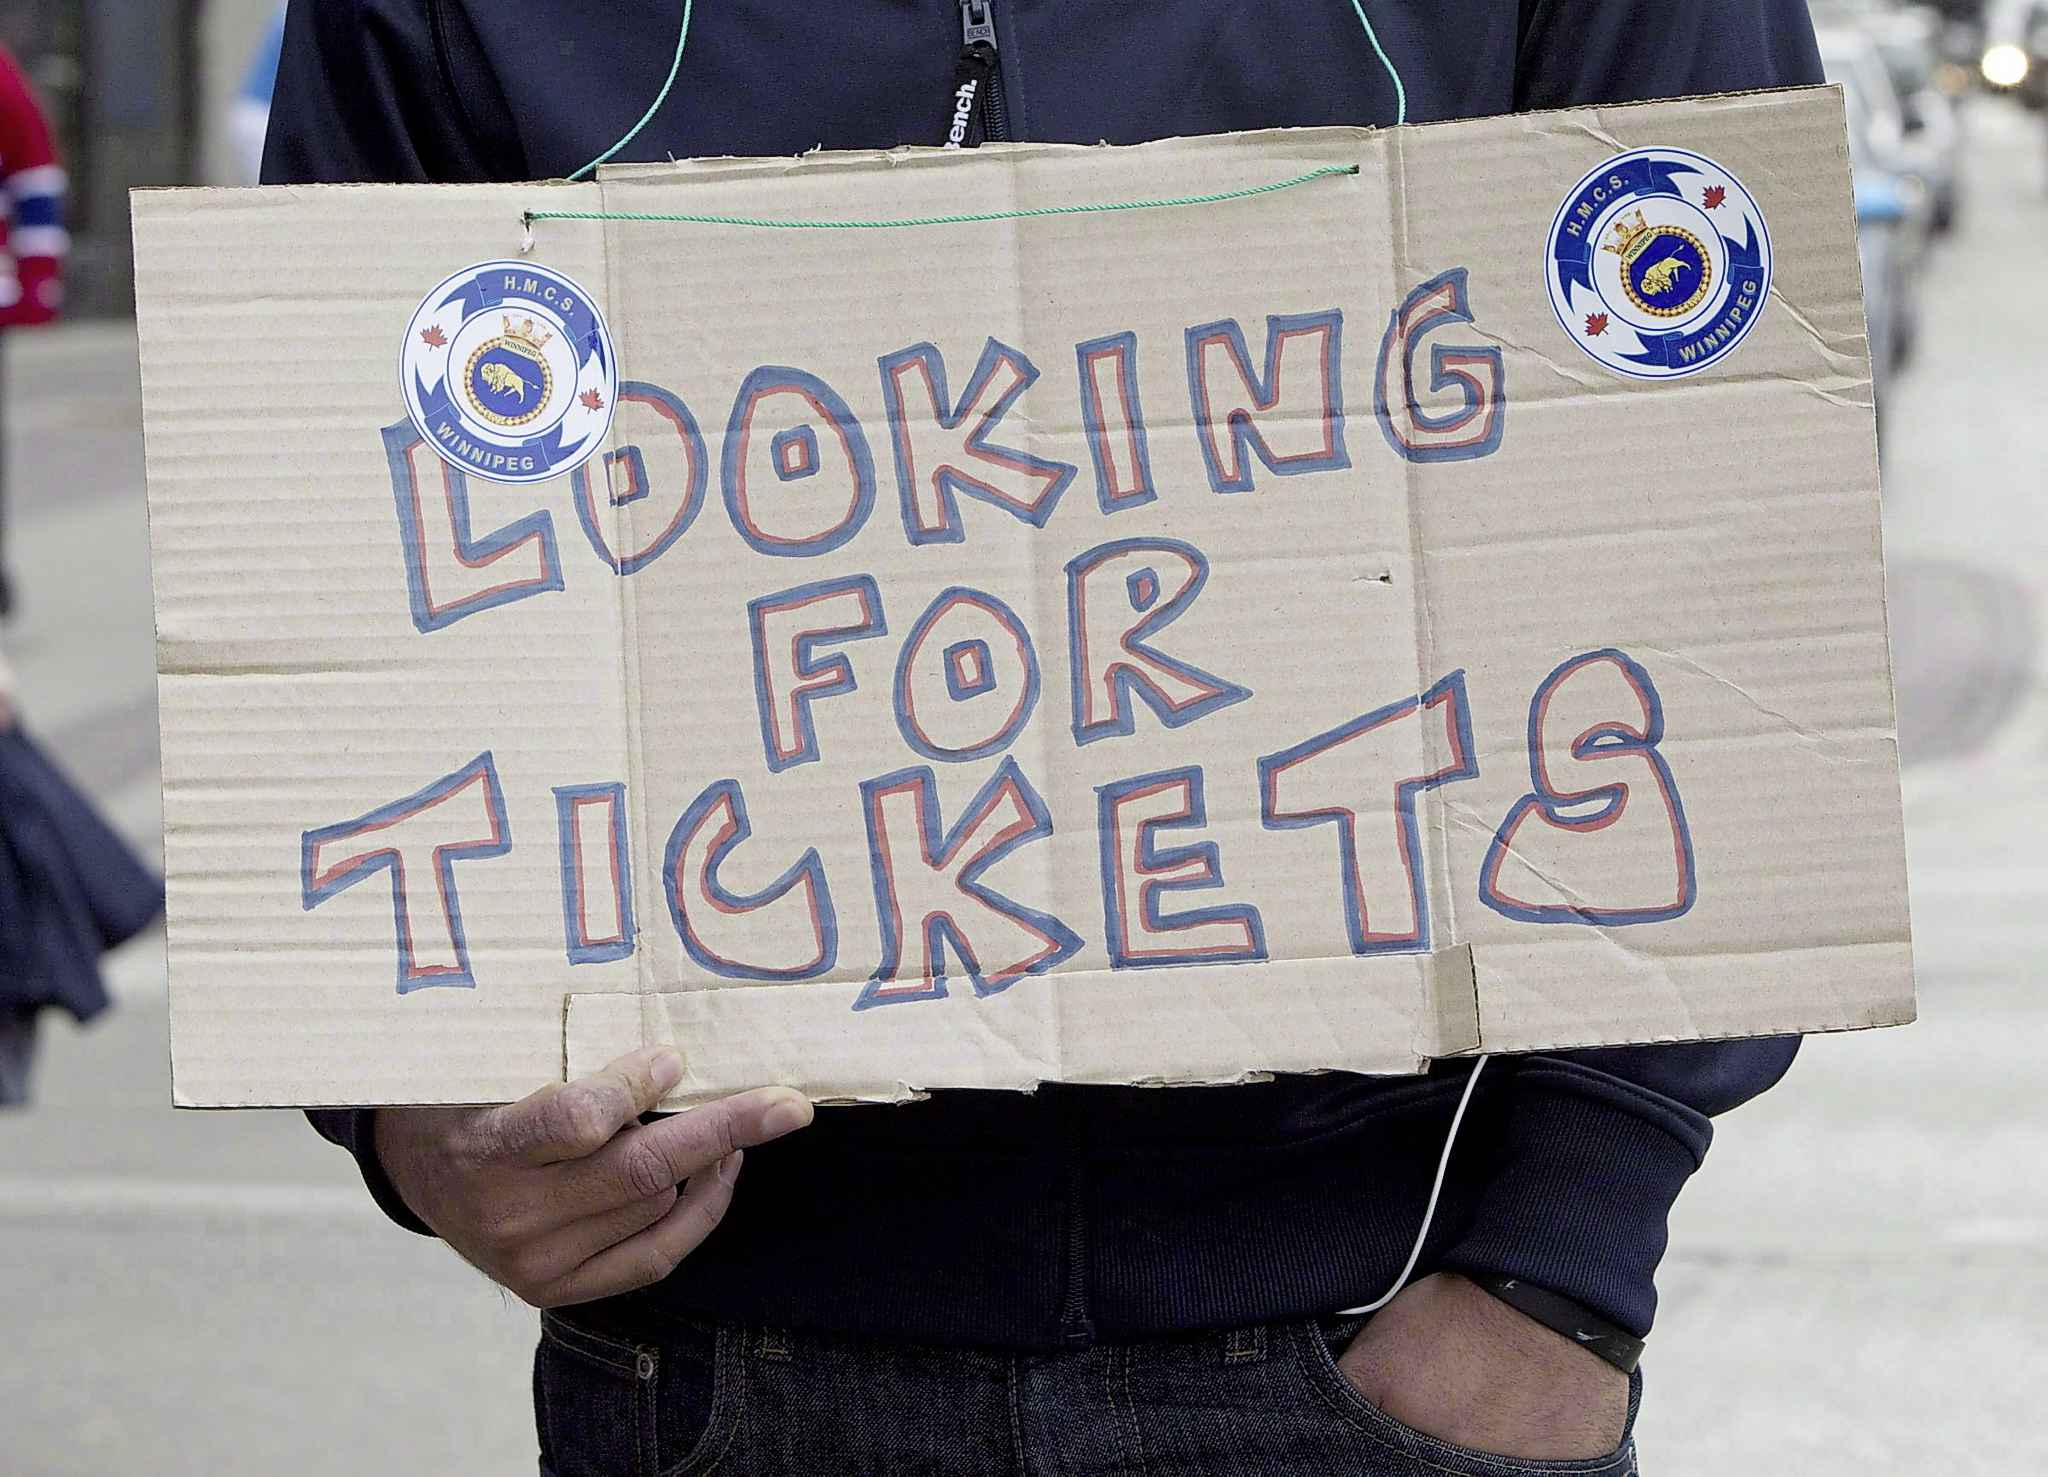 Winnipeg Jets tickets quickly became the hottest in town when the NHL returned to the city in 2011.